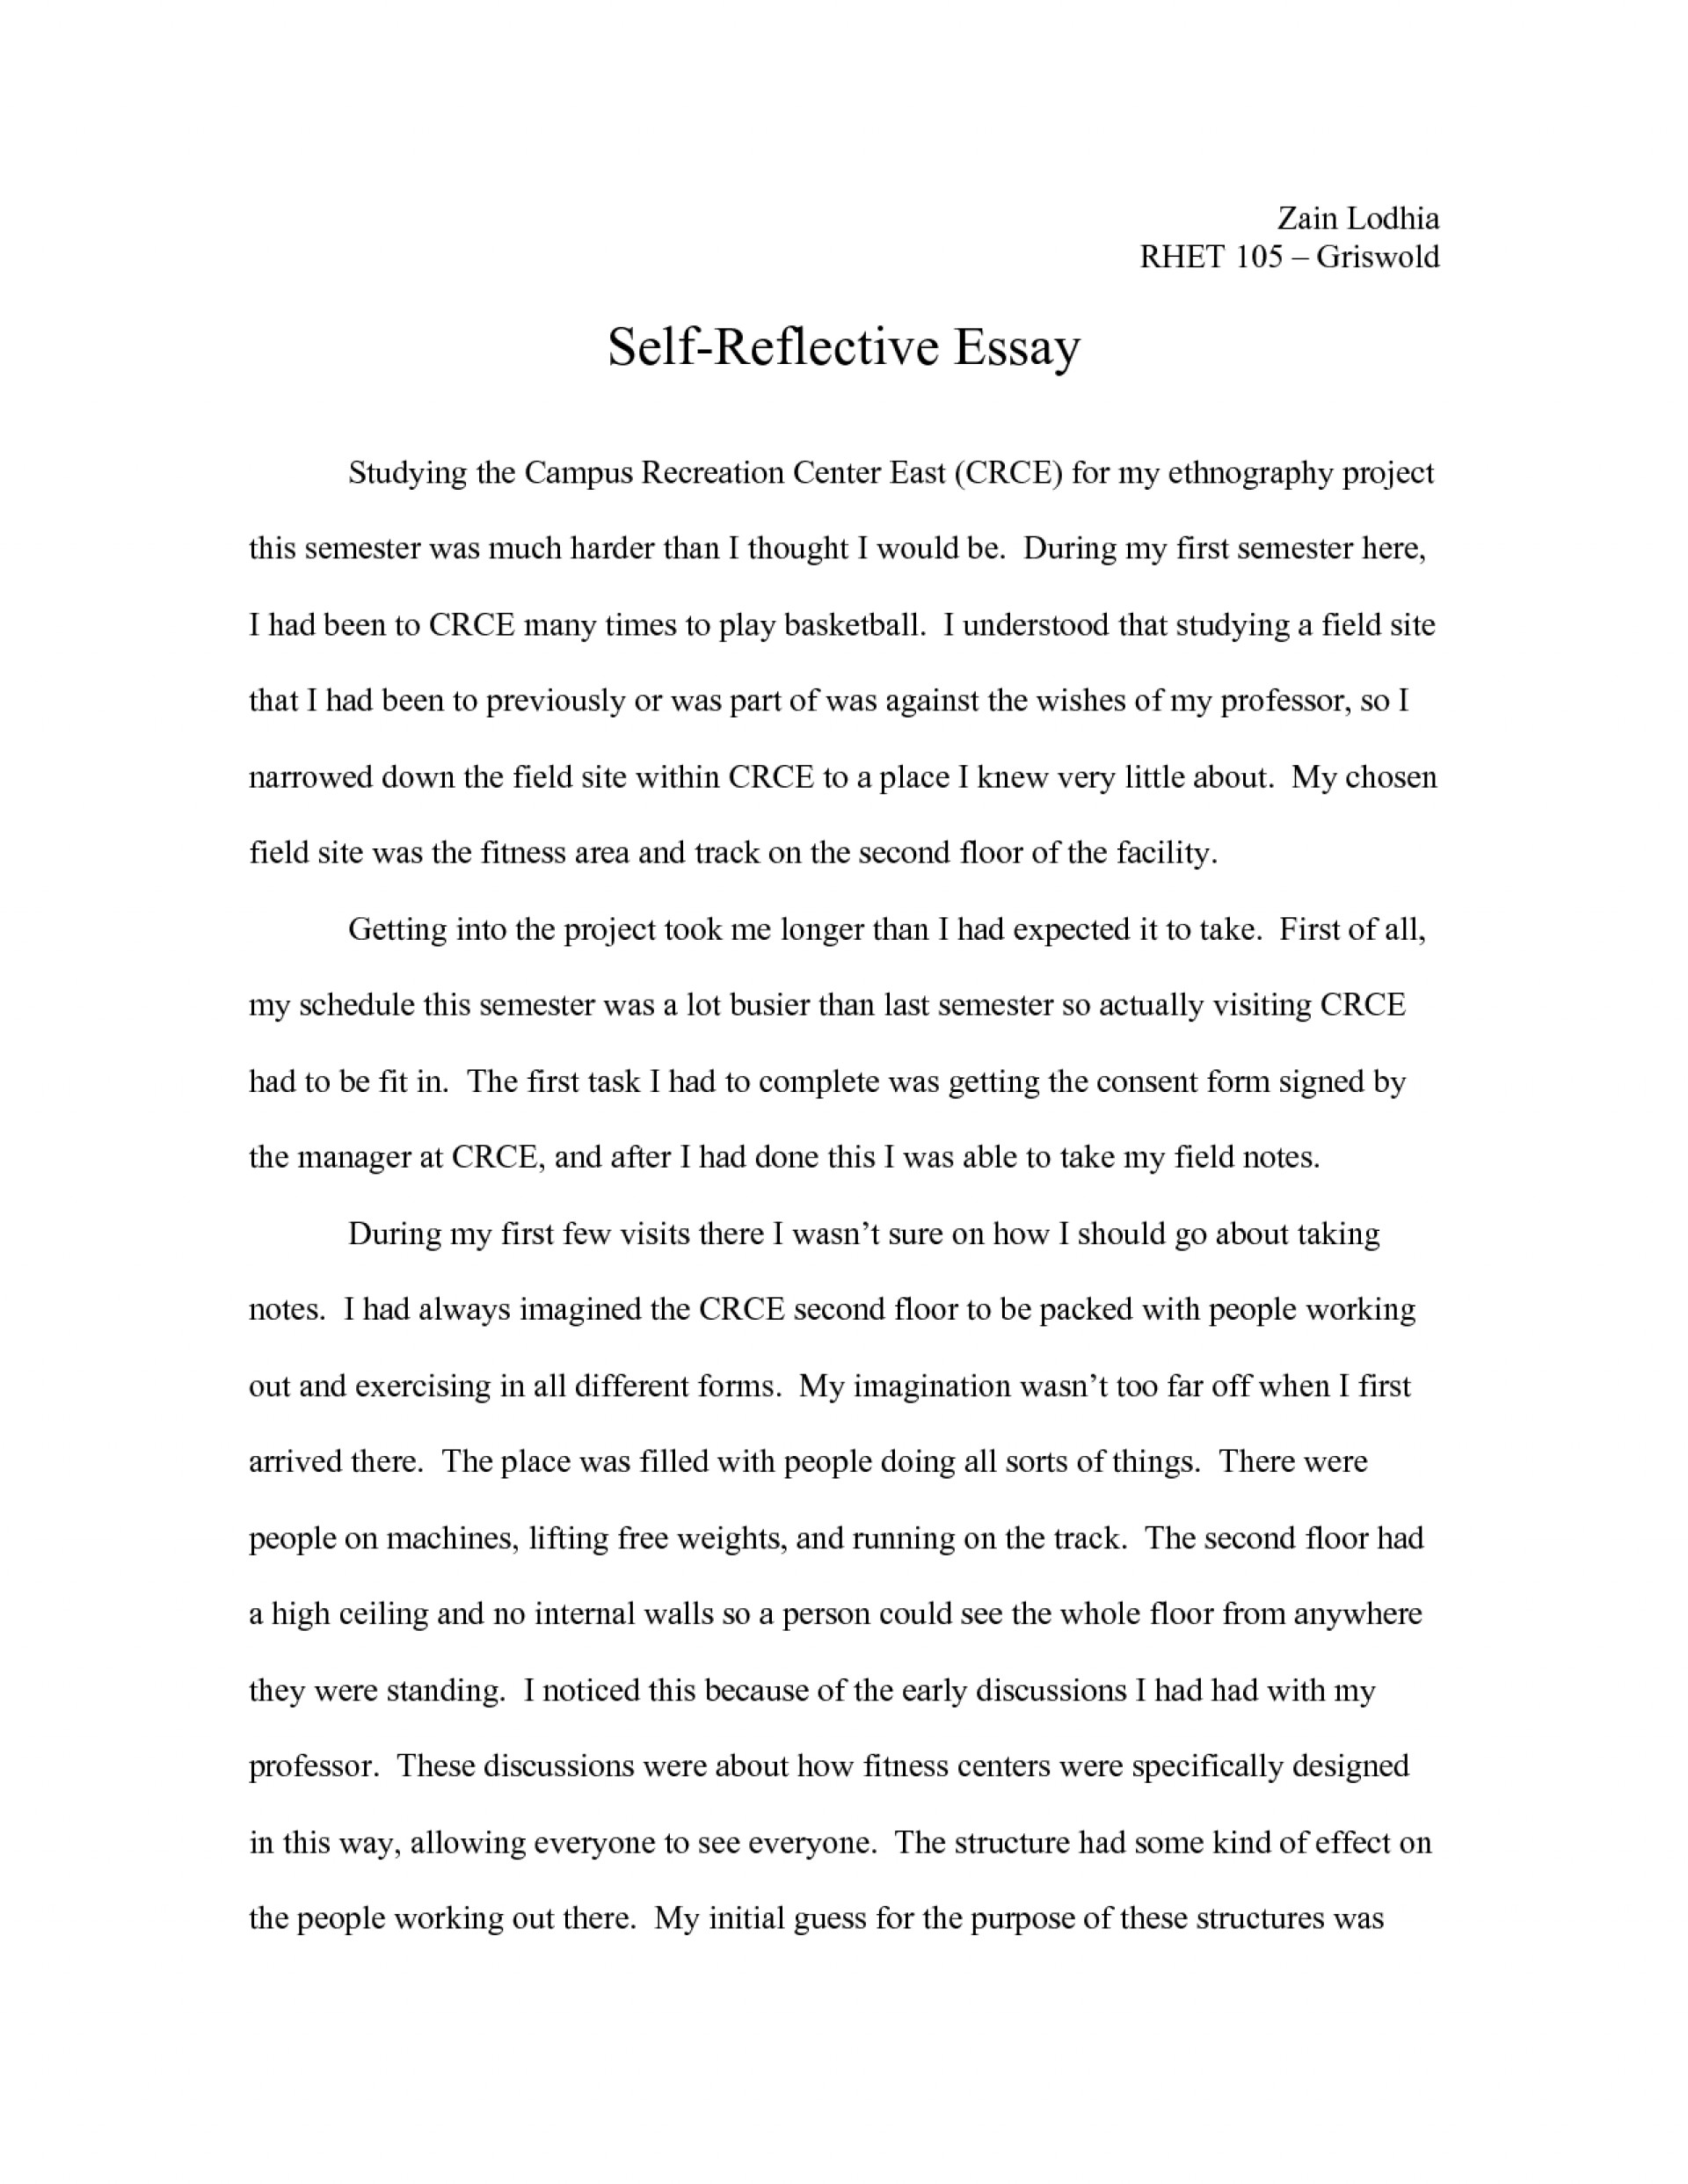 018 Qal0pwnf46 Fitness Essay Exceptional Personal Topics Health And Conclusion 1920